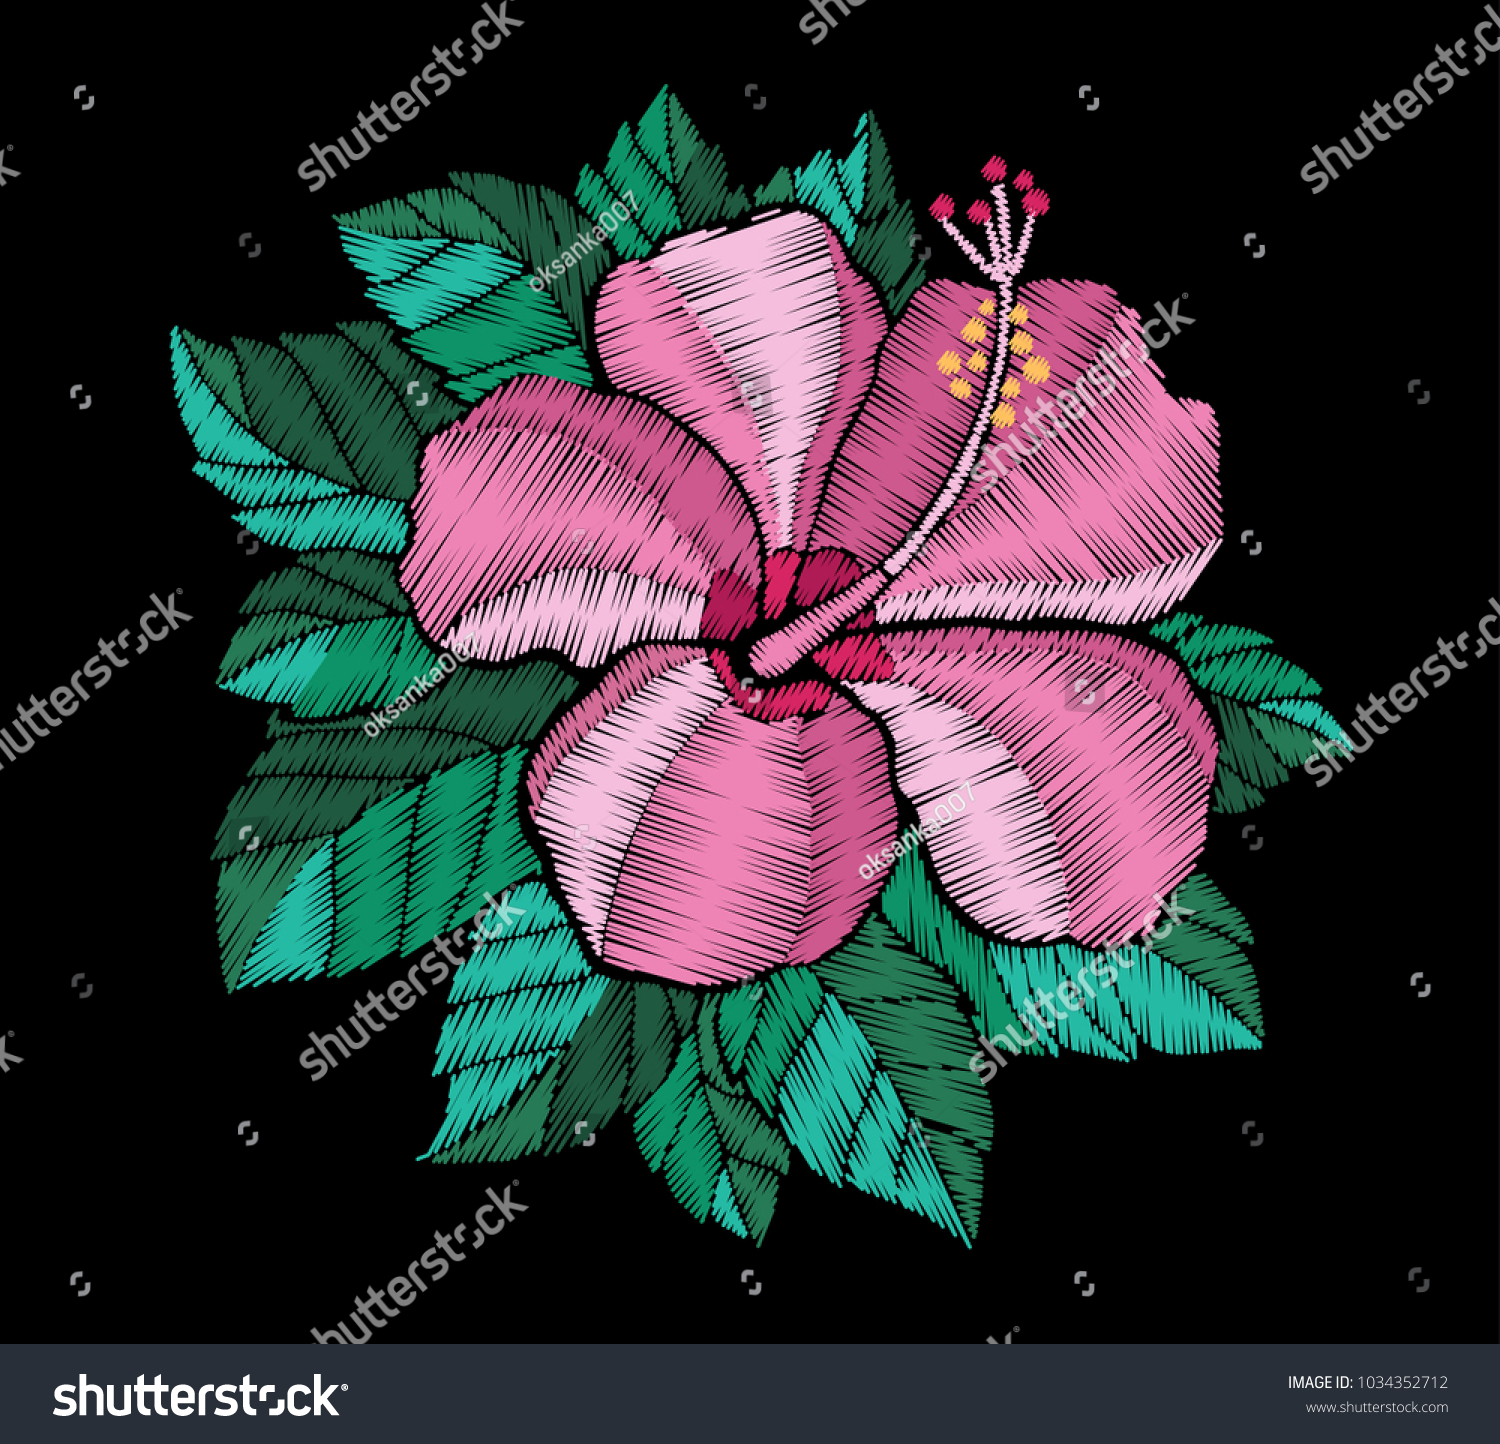 Embroidery Hibiscus Flower Craft Botanical Ethnic Stock Vector